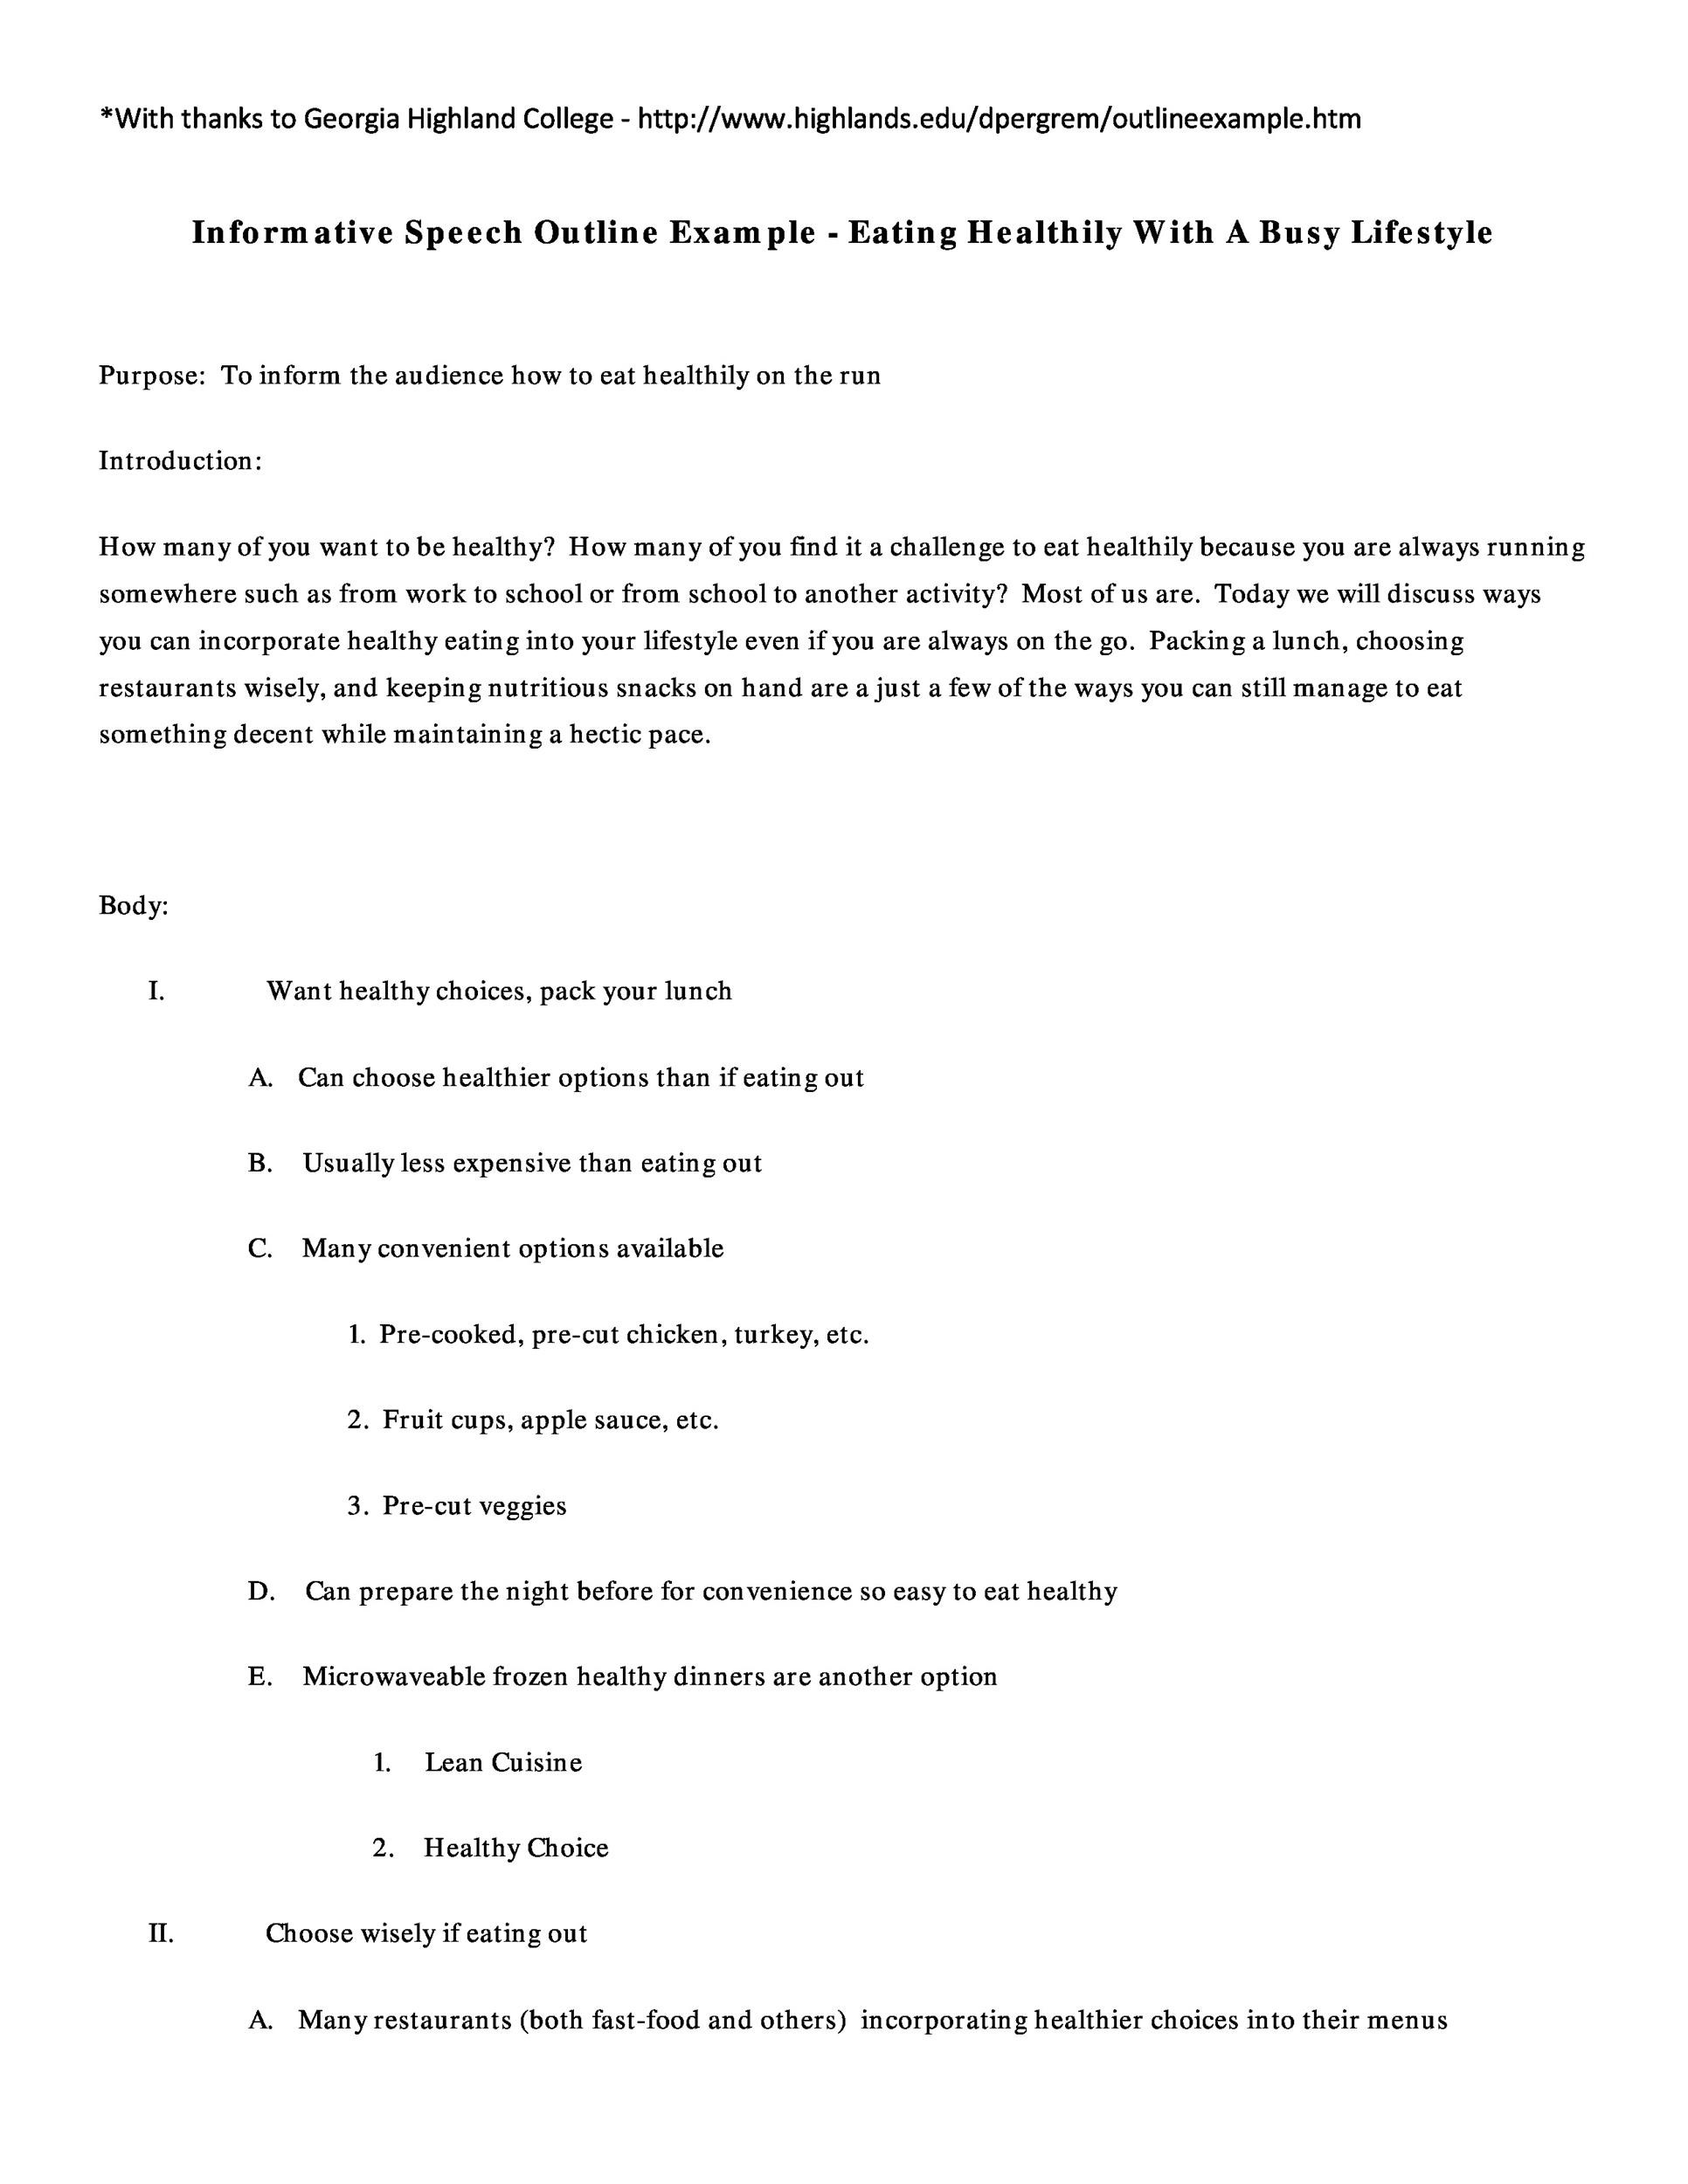 Free Informative Speech Outline 31